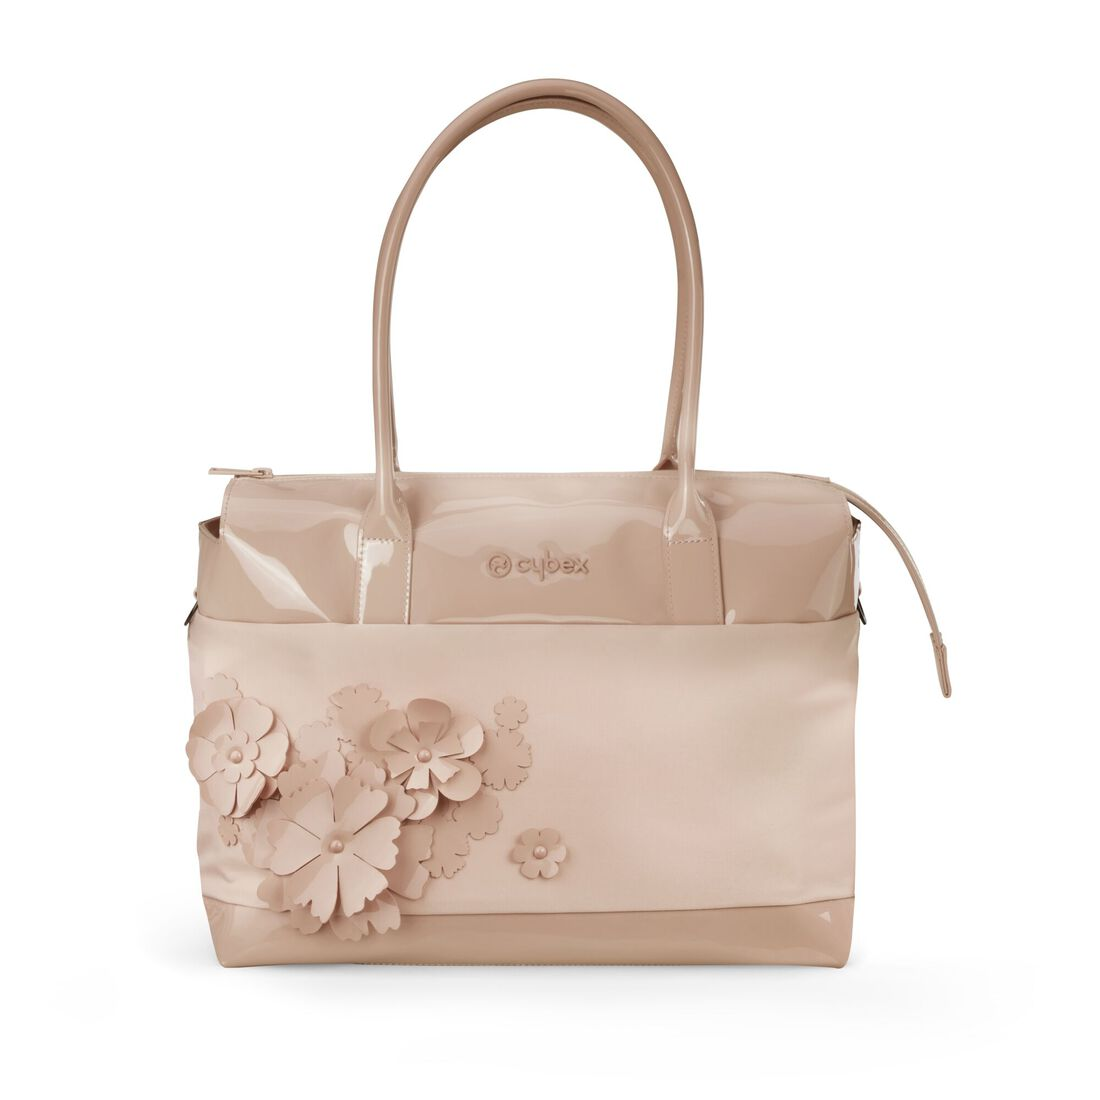 CYBEX Changing Bag Simply Flowers - Nude Beige in Nude Beige large image number 1